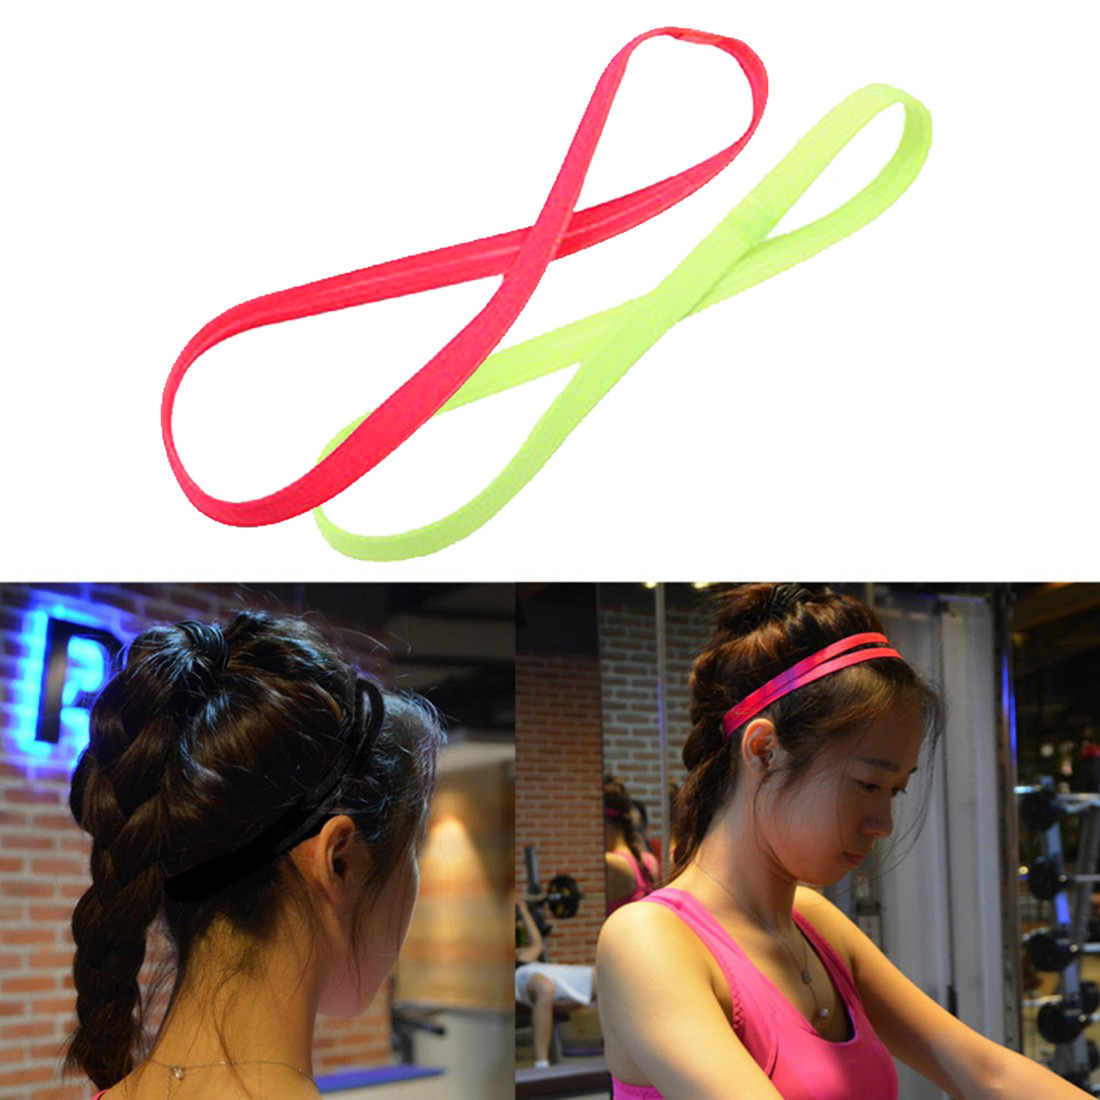 New Men Women Yoga Hair Bands Sports Headband Anti-Slip Elastic Rubber Sweatband Yoga Running Football Biking Headband